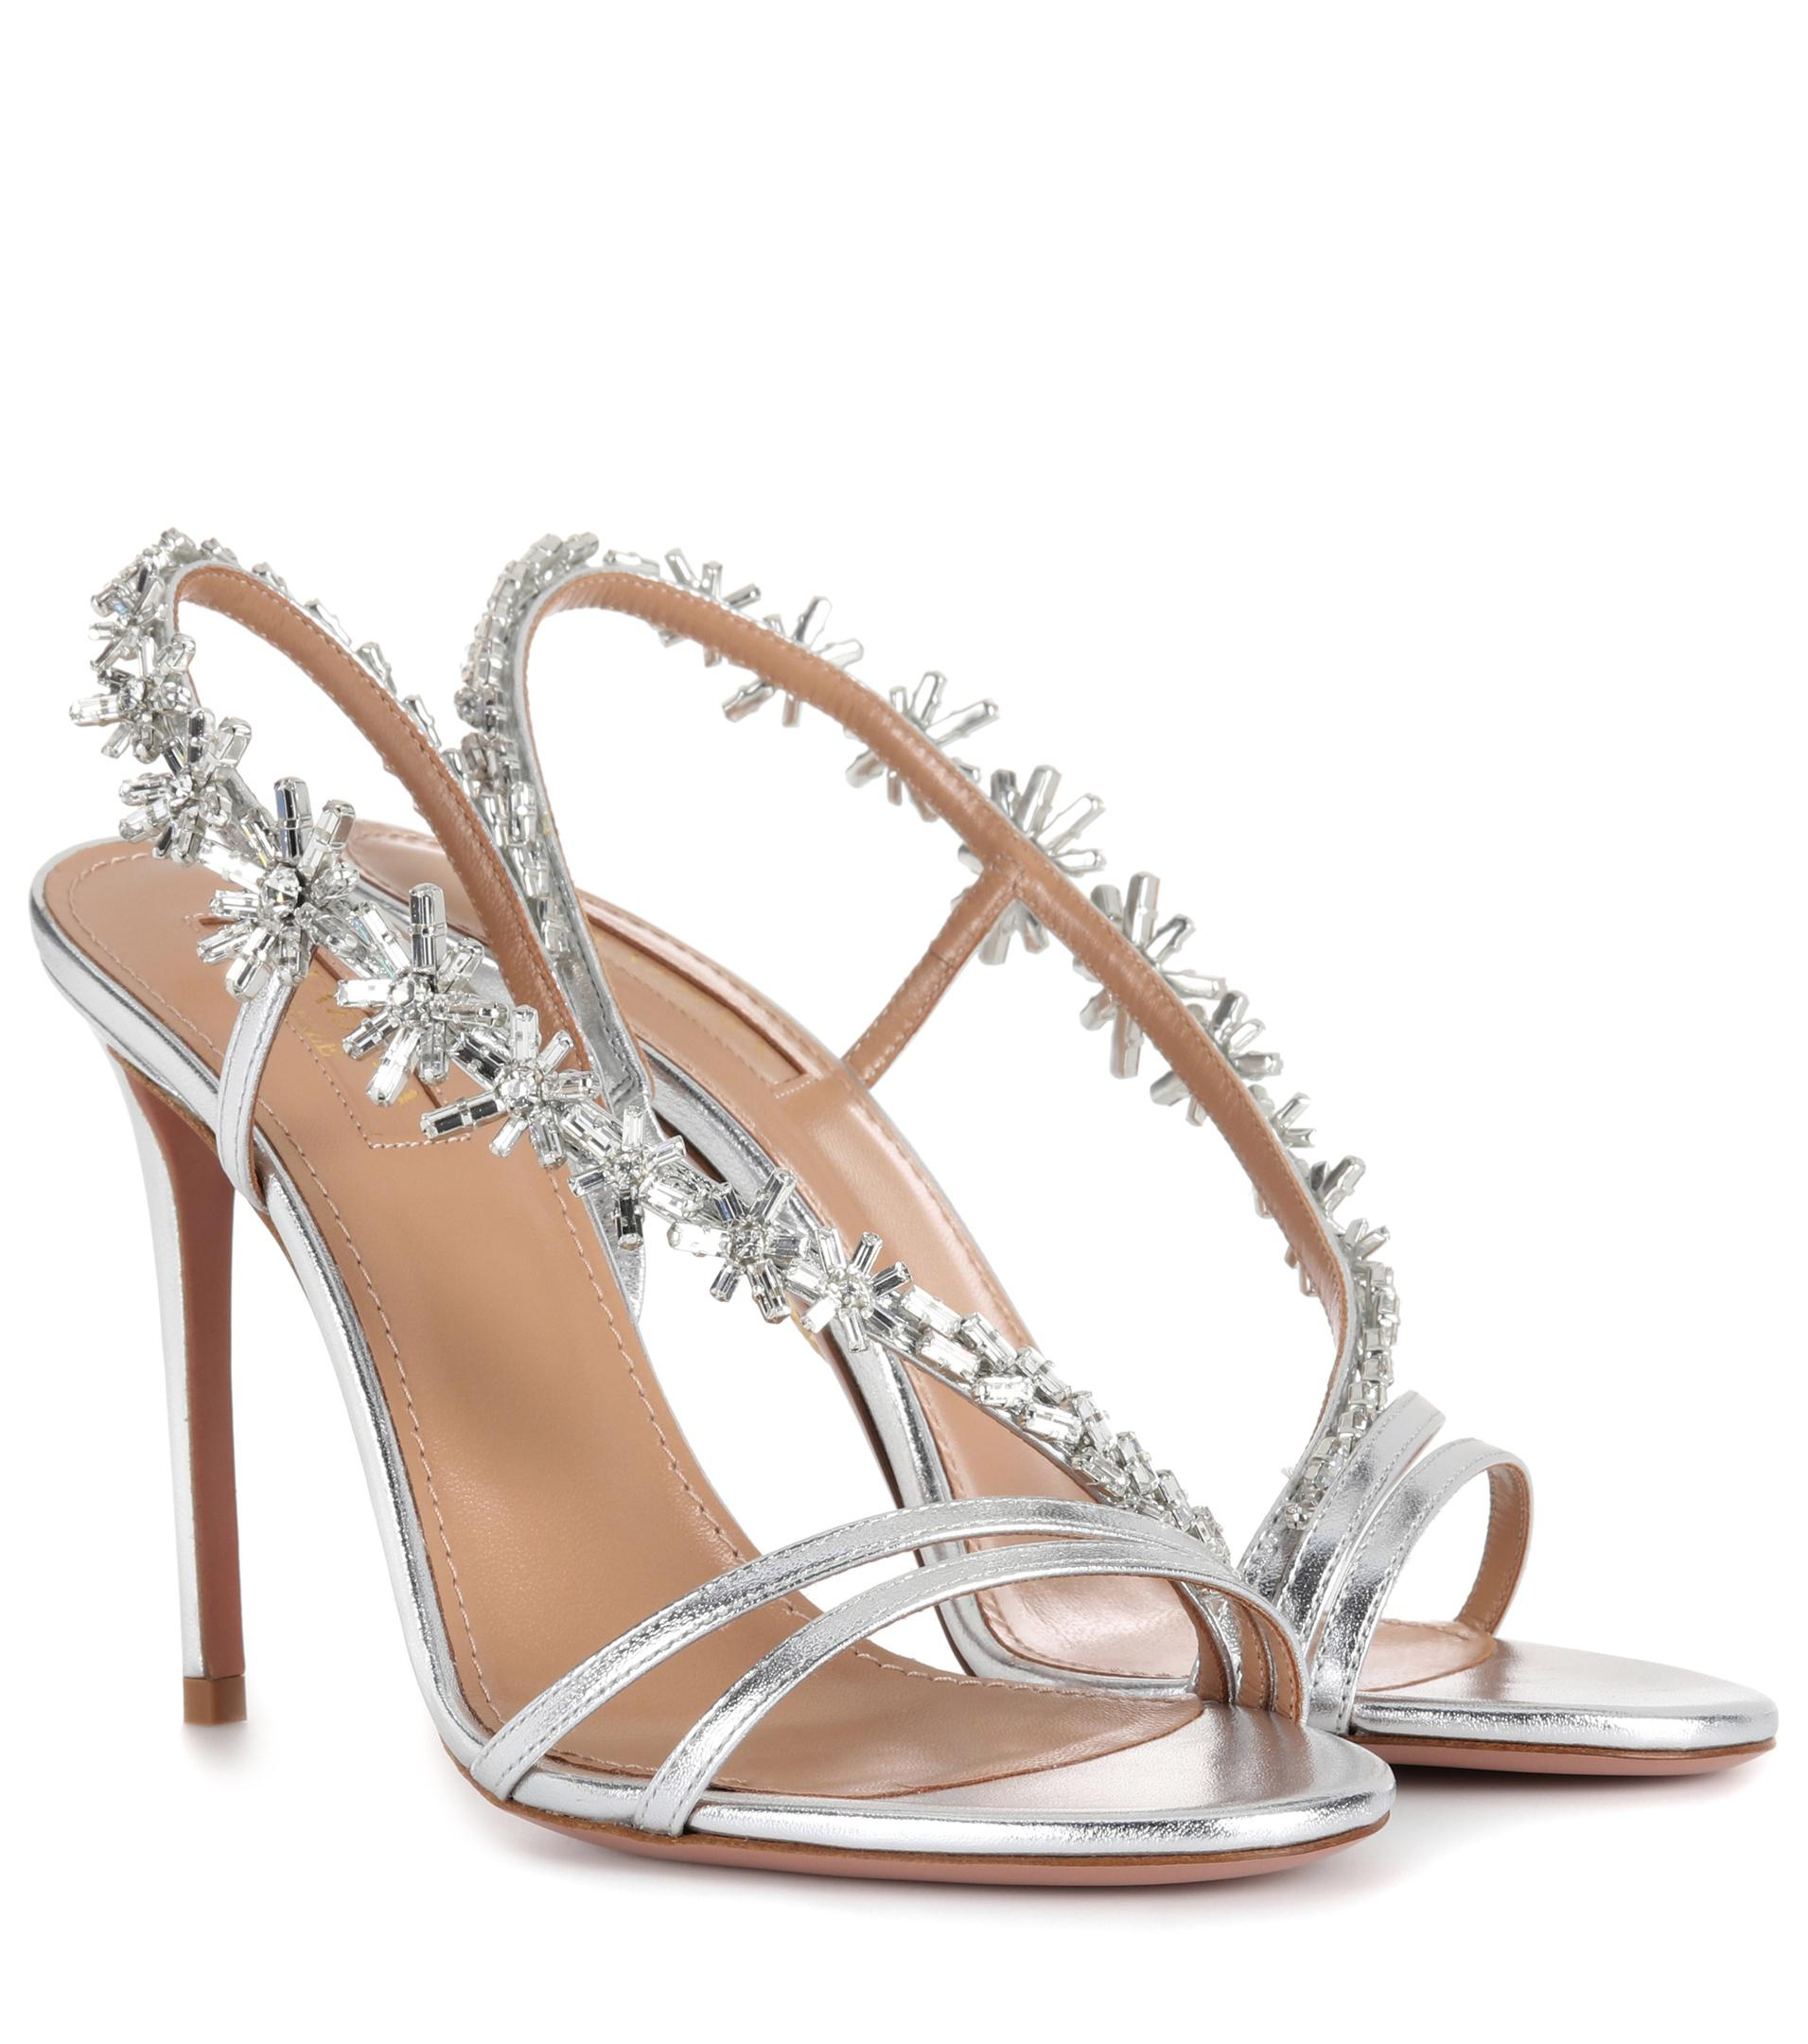 Aquazzura Chateau 105 sandals free shipping Manchester sale the cheapest pre order sale online free shipping geniue stockist ucFD5M